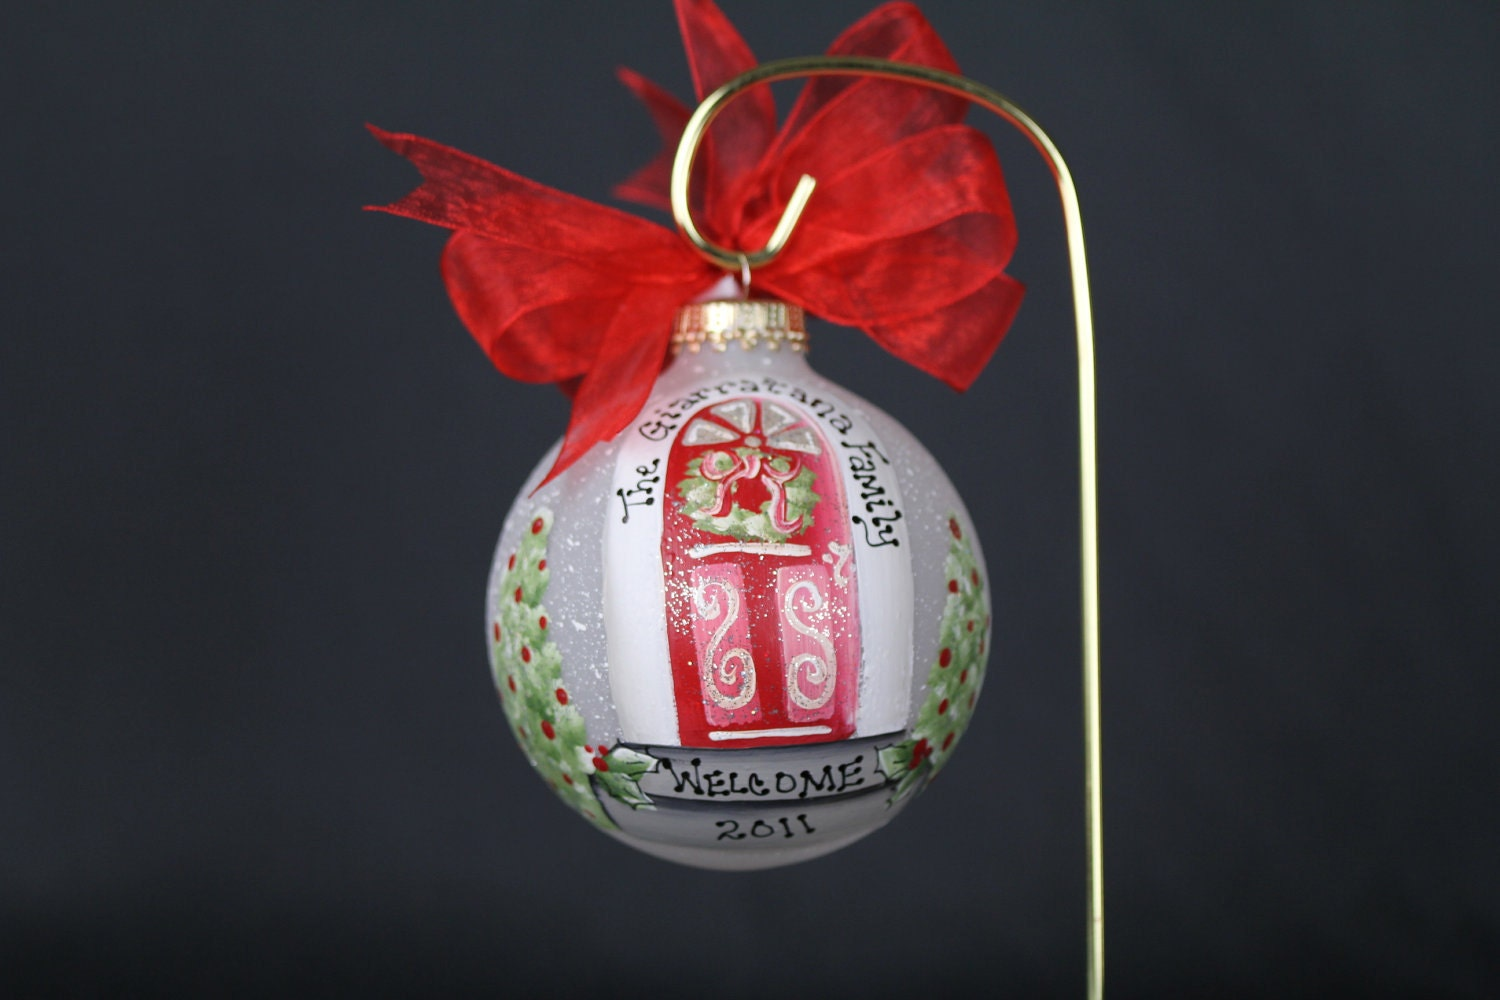 New home ornaments personalized -  New Home Christmas Ornament Personalized Free Zoom